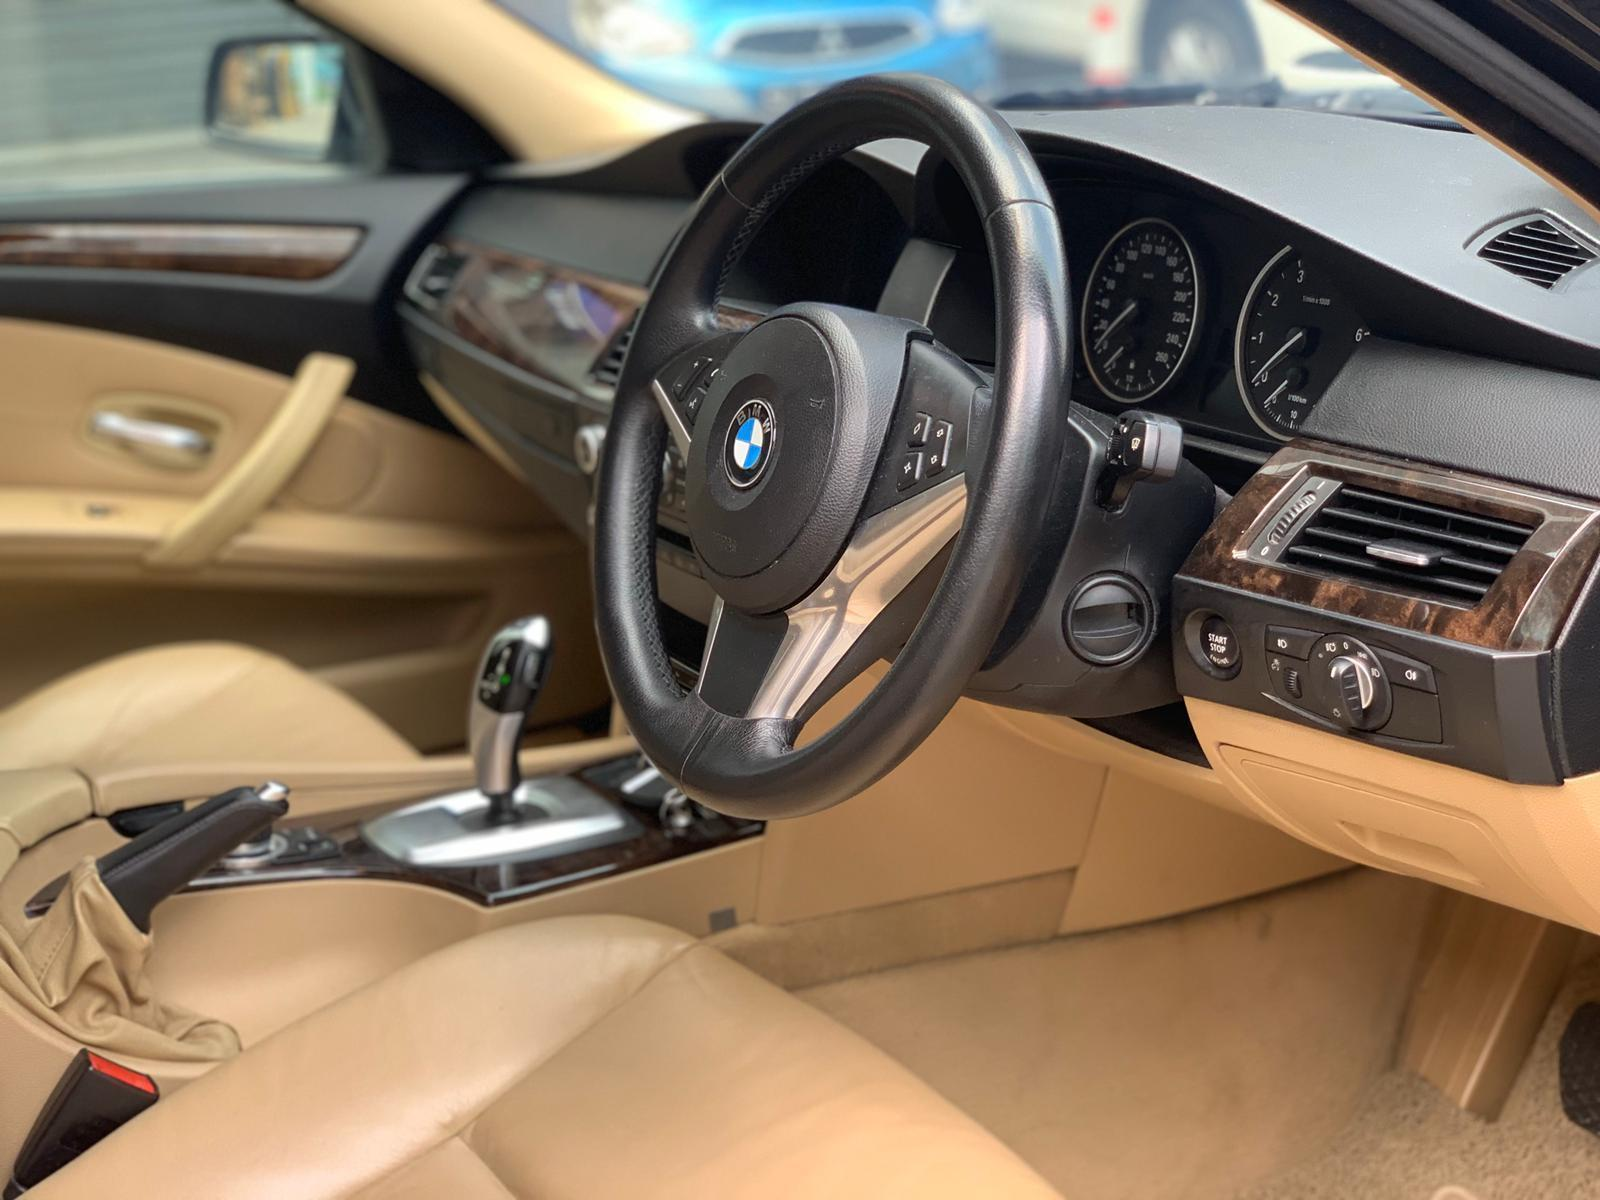 BMW 525i XL Luxury @ Cheapest rates, full support!